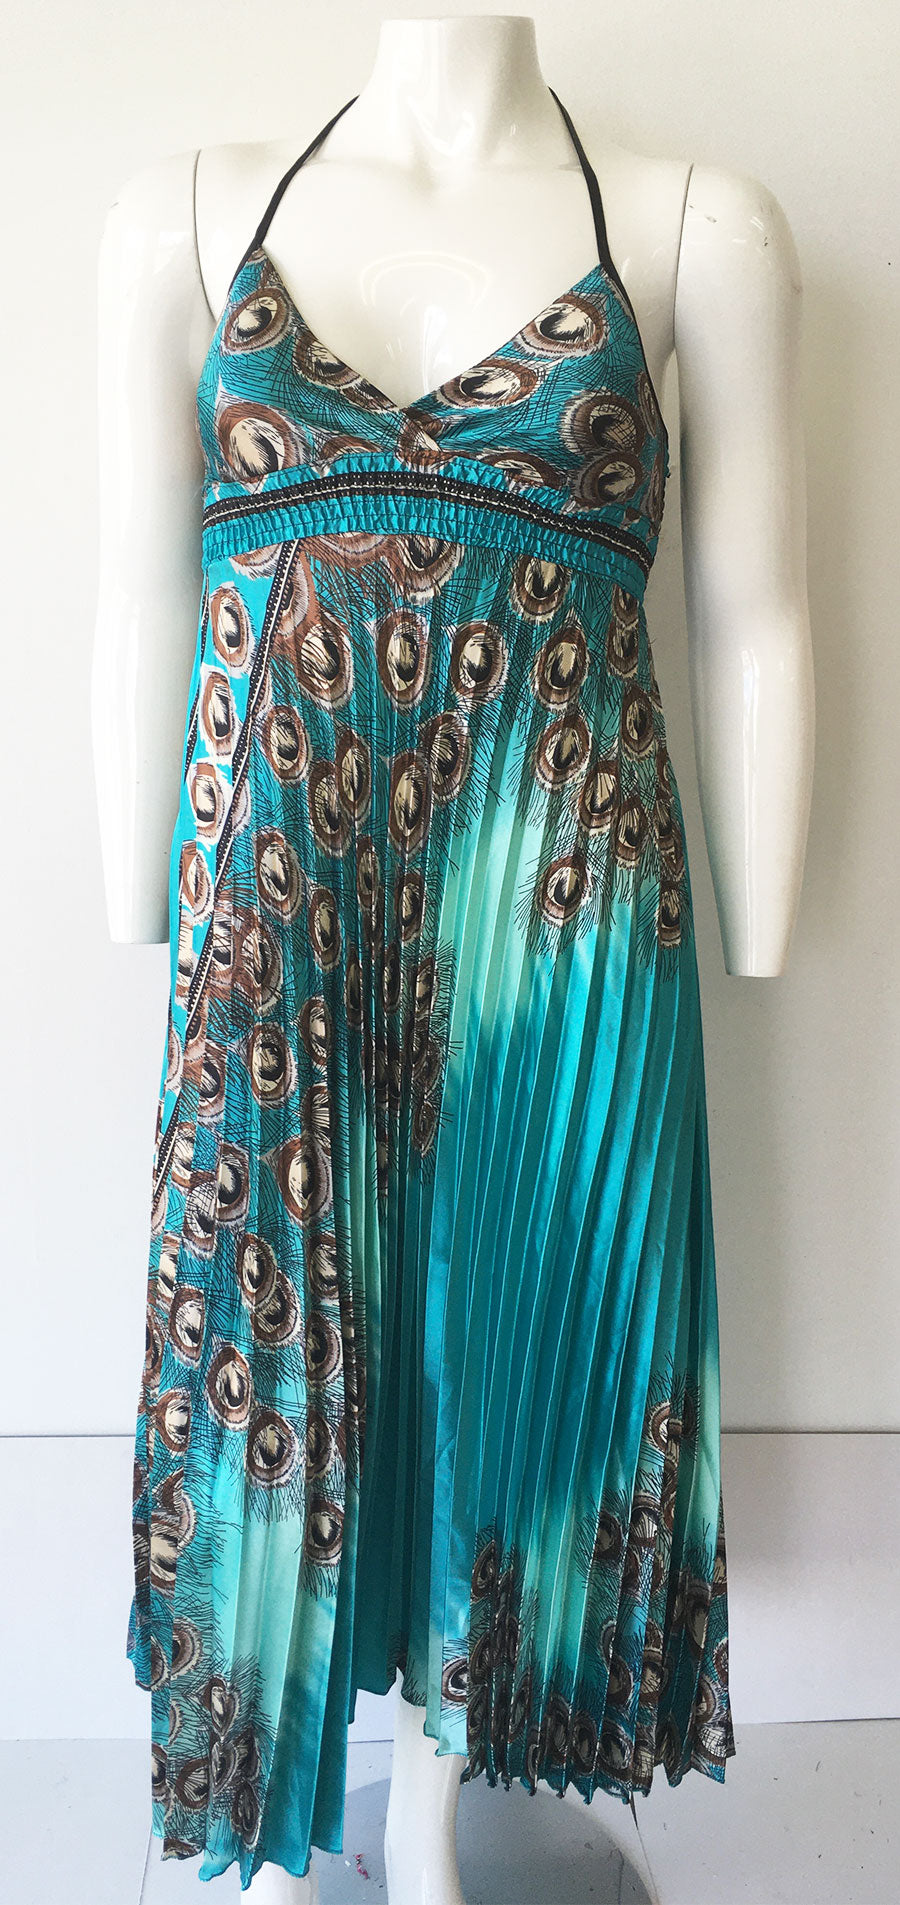 Casual Dress SB257-Turquoise - Church Suits For Less